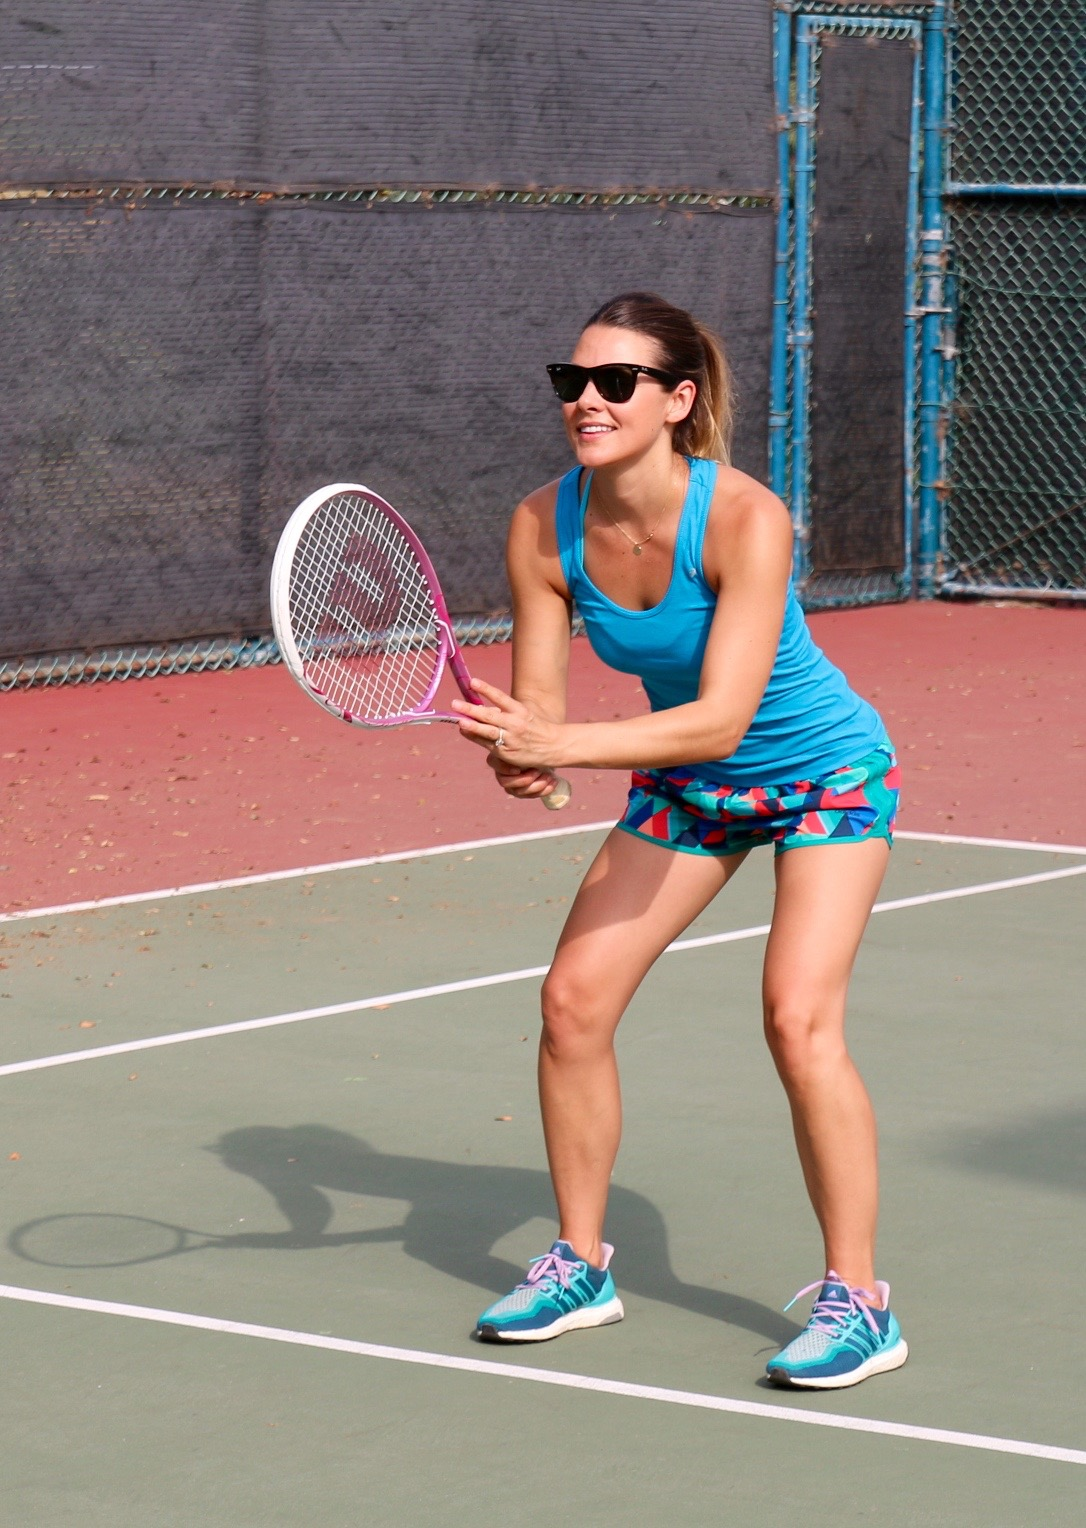 Tennis Tips For Beginners